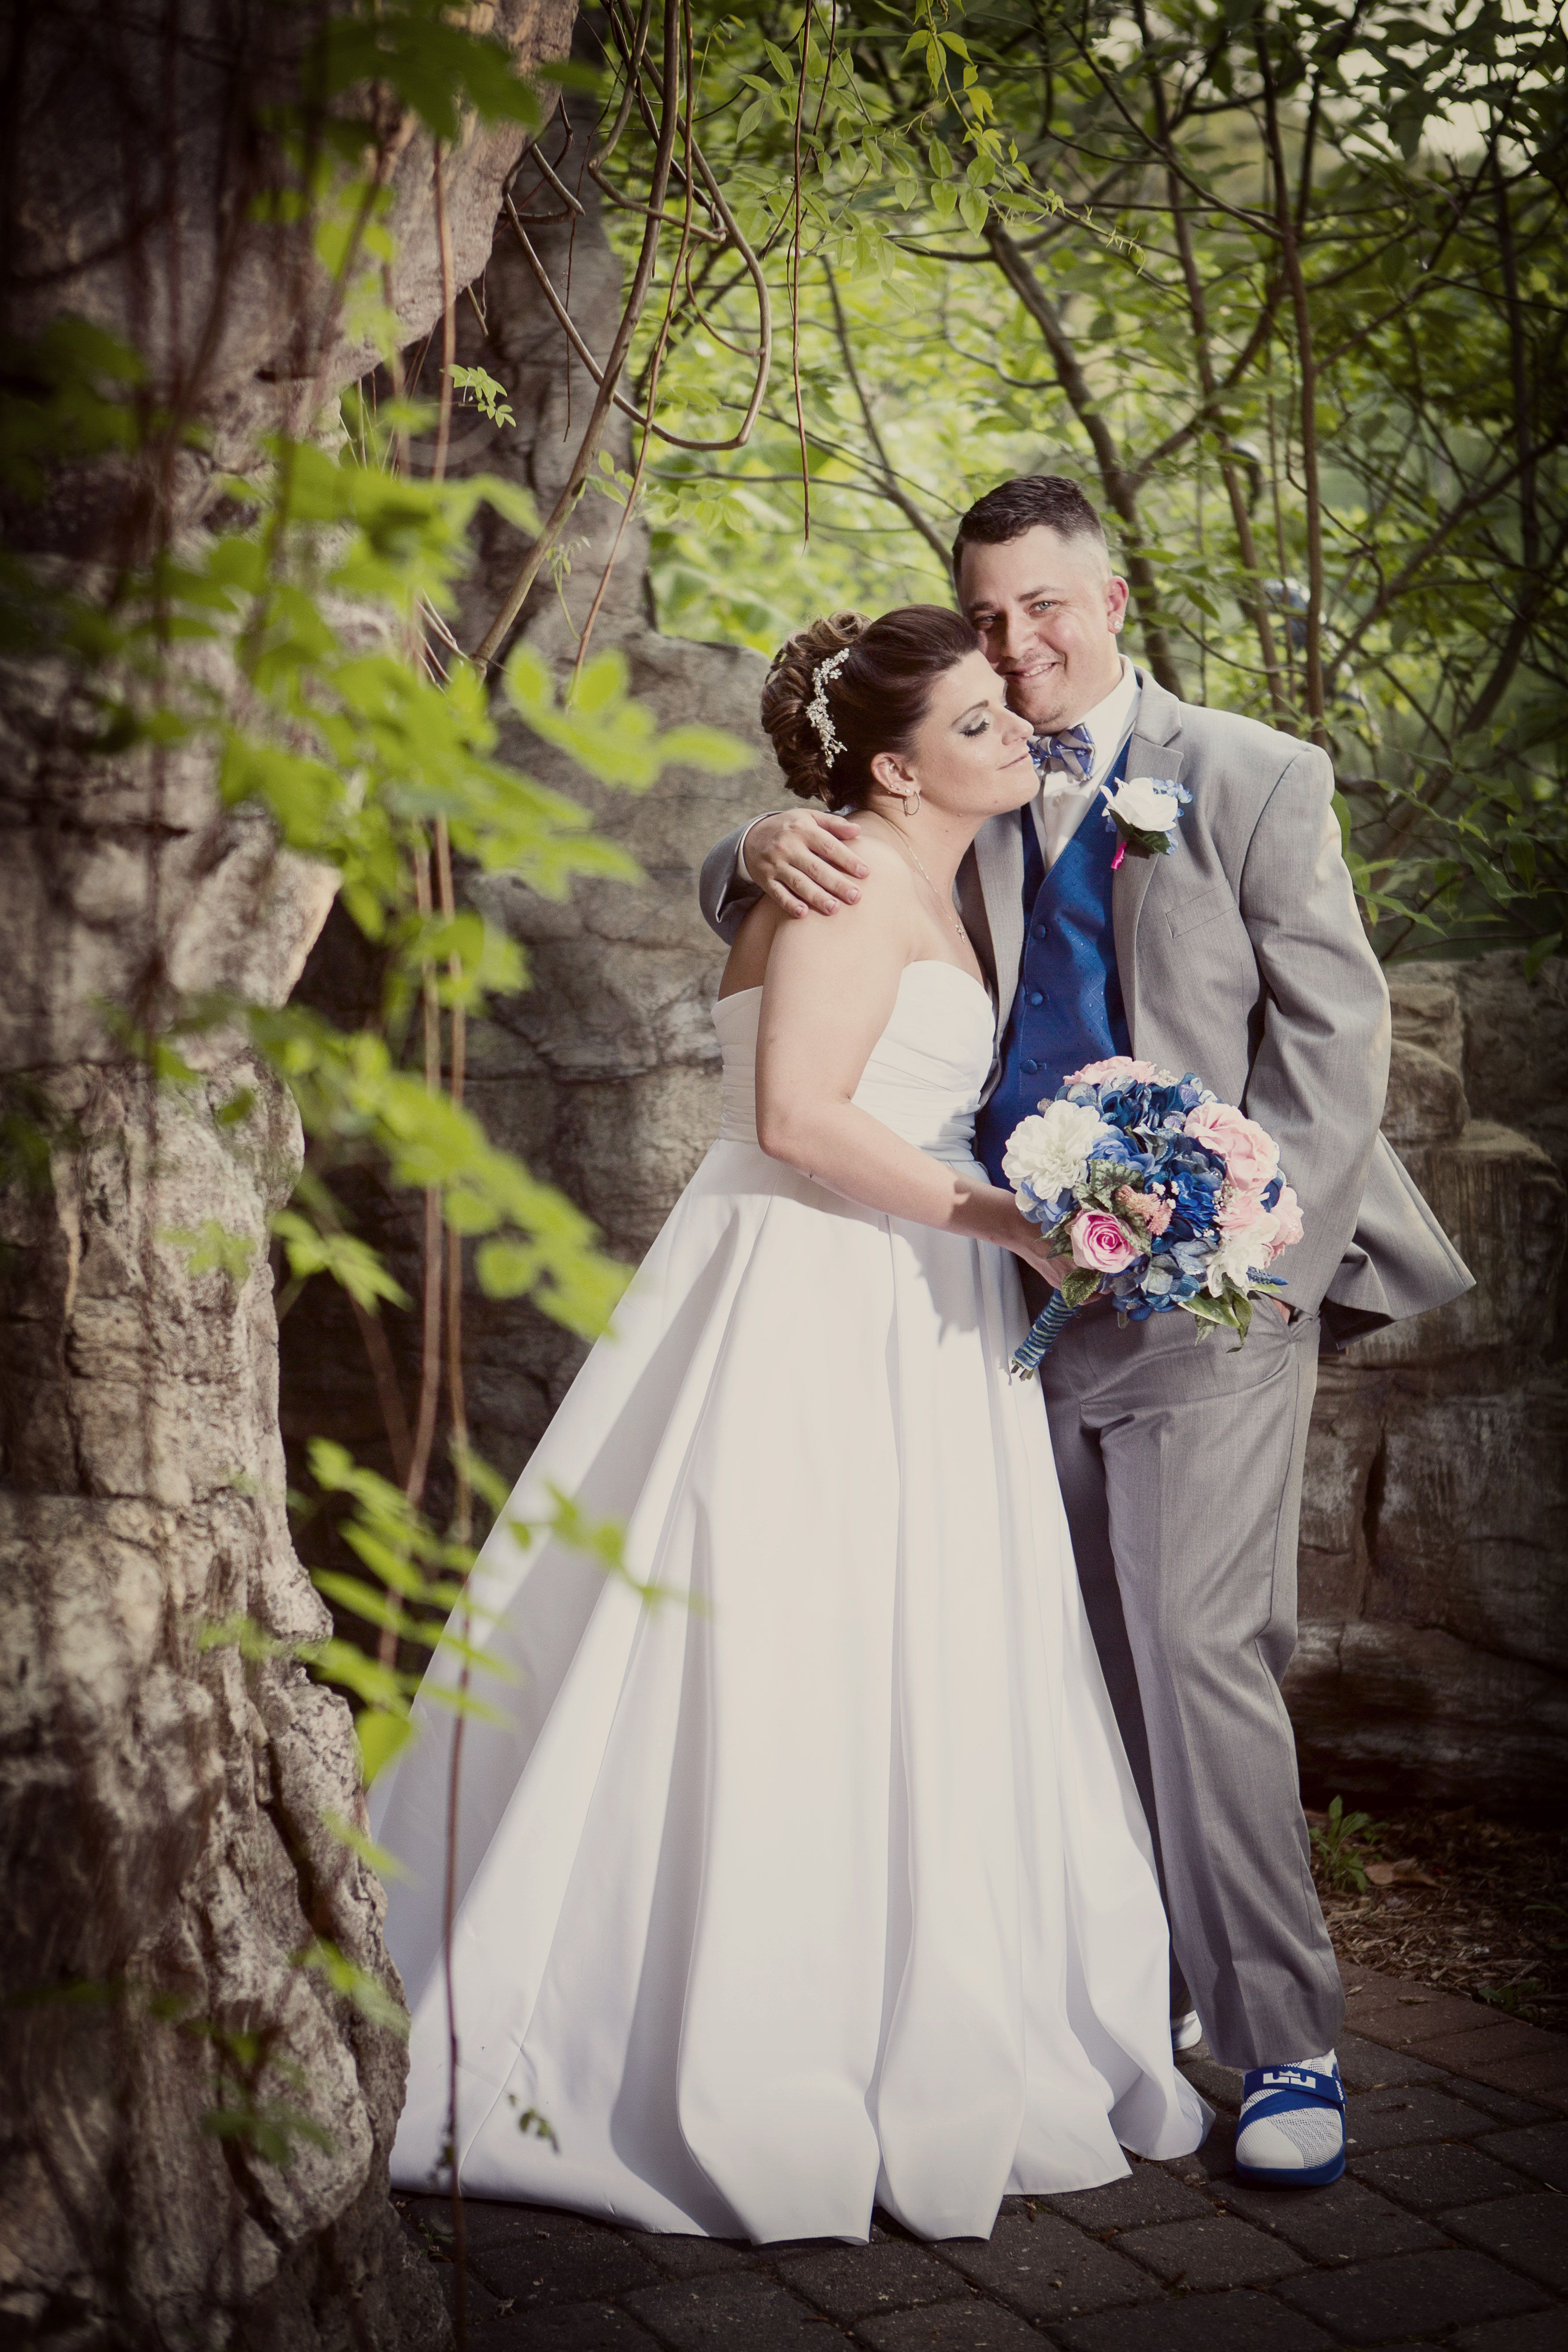 Bride And Groom Portrait At An Outdoor Summer Wedding At